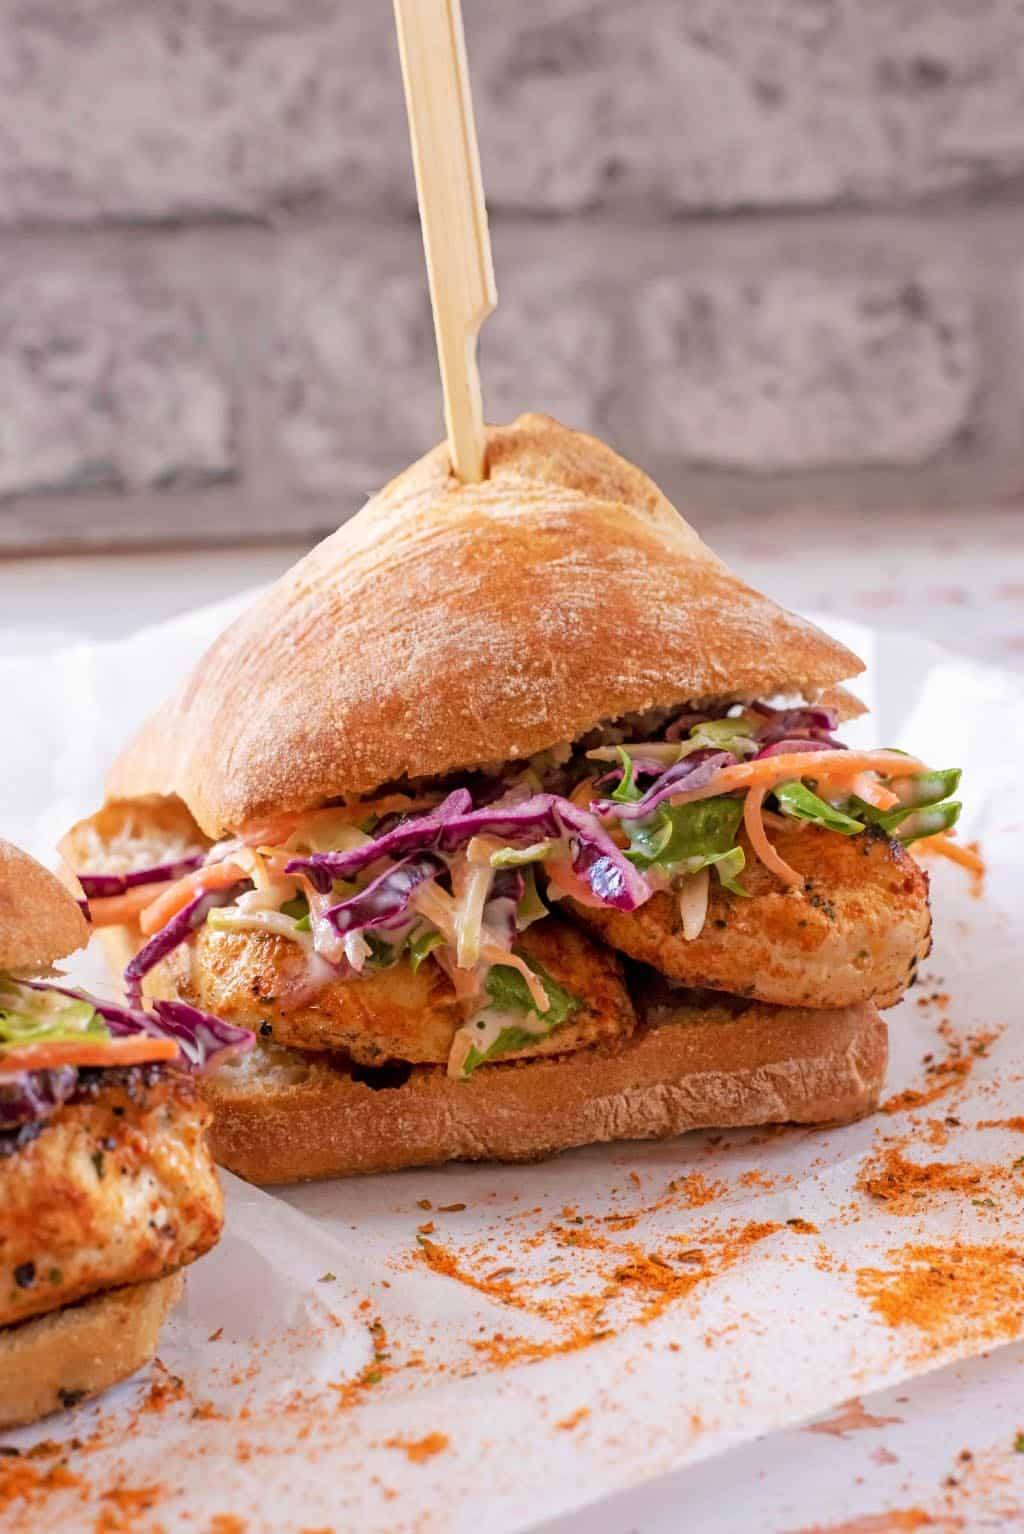 Chicken Burger and slaw in a bun with a wooden skewer through it all